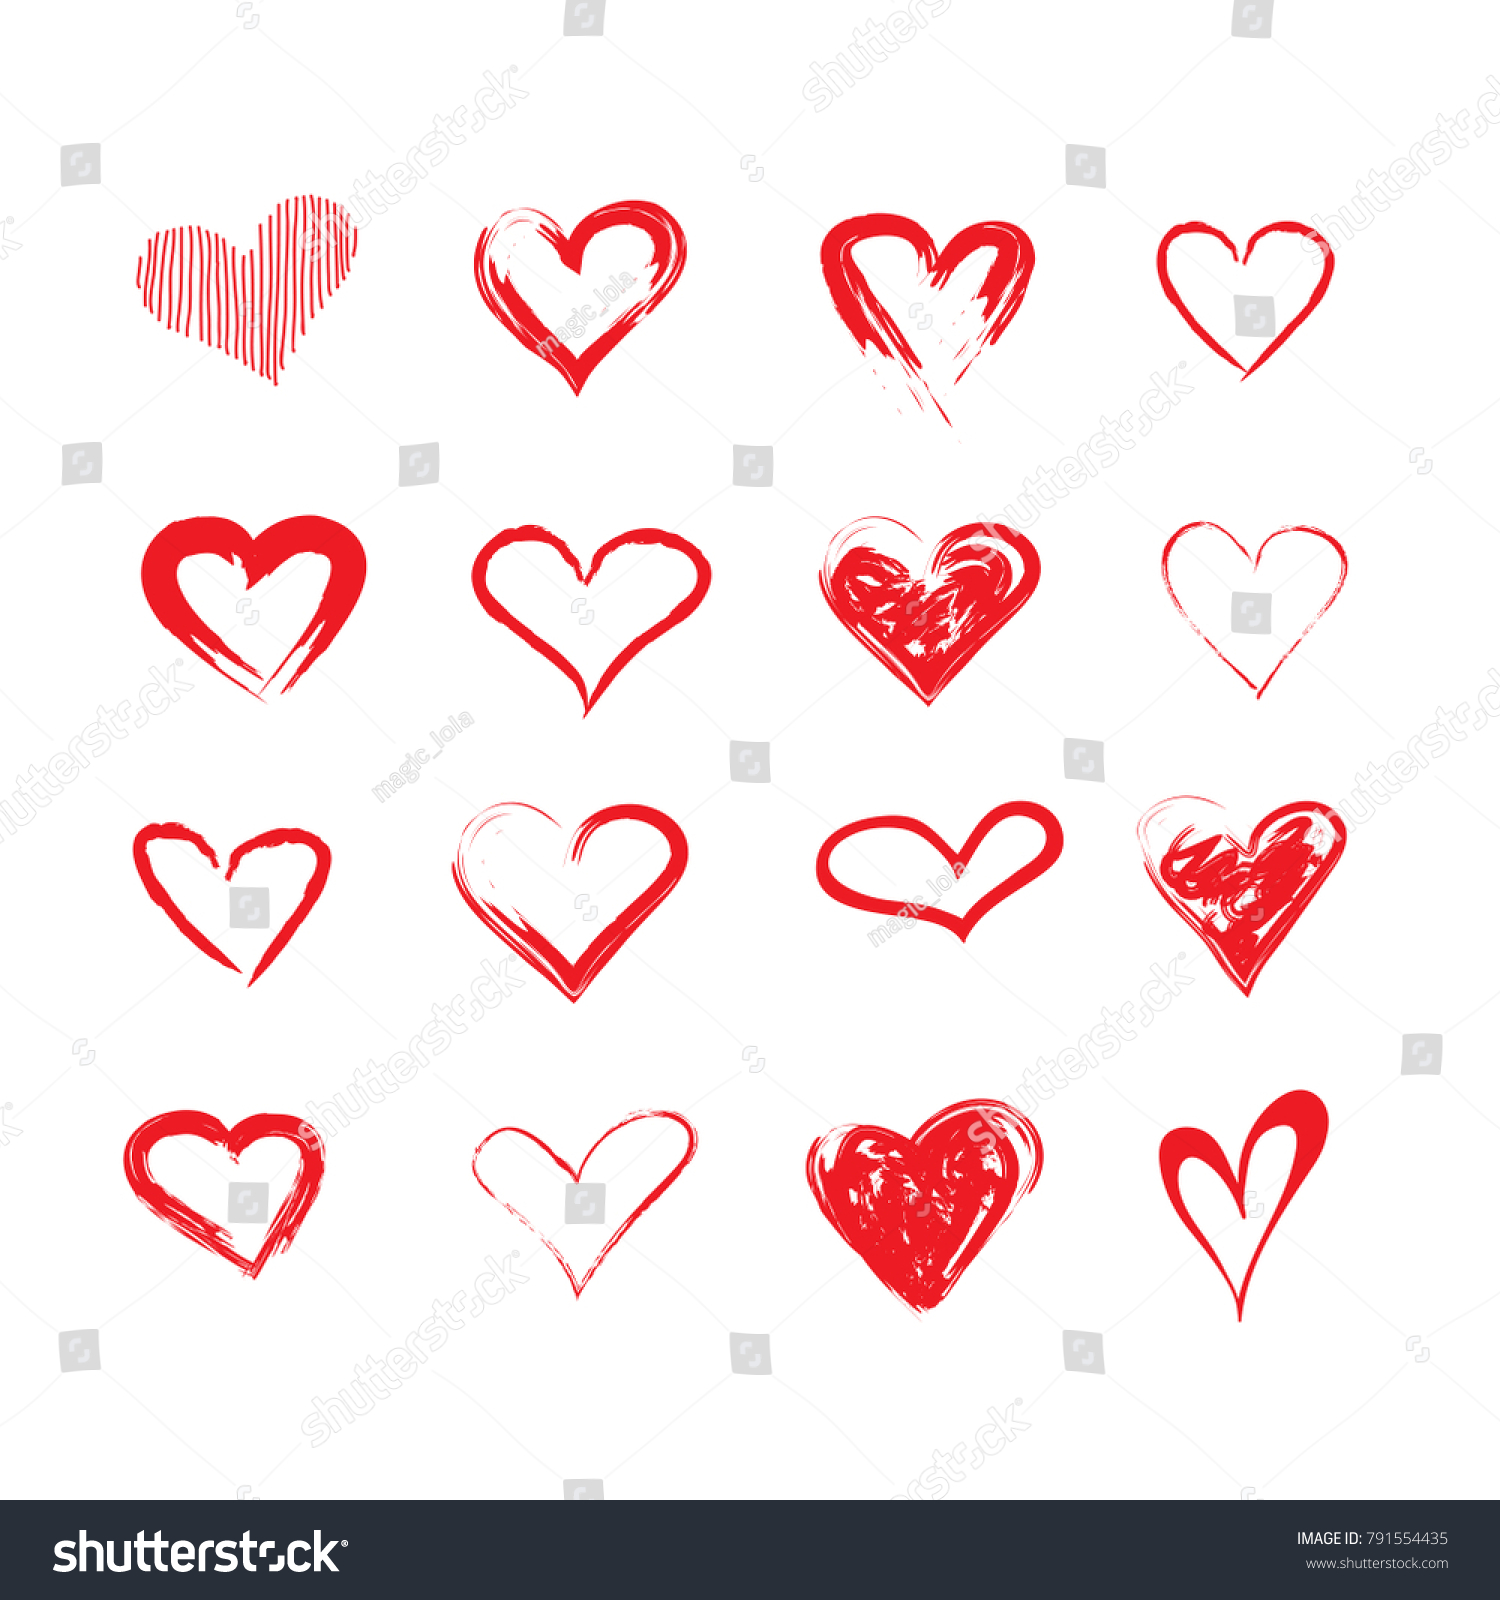 Vector Grunge Hearts Set Valentine Day Stock-Vektorgrafik 791554435 ...